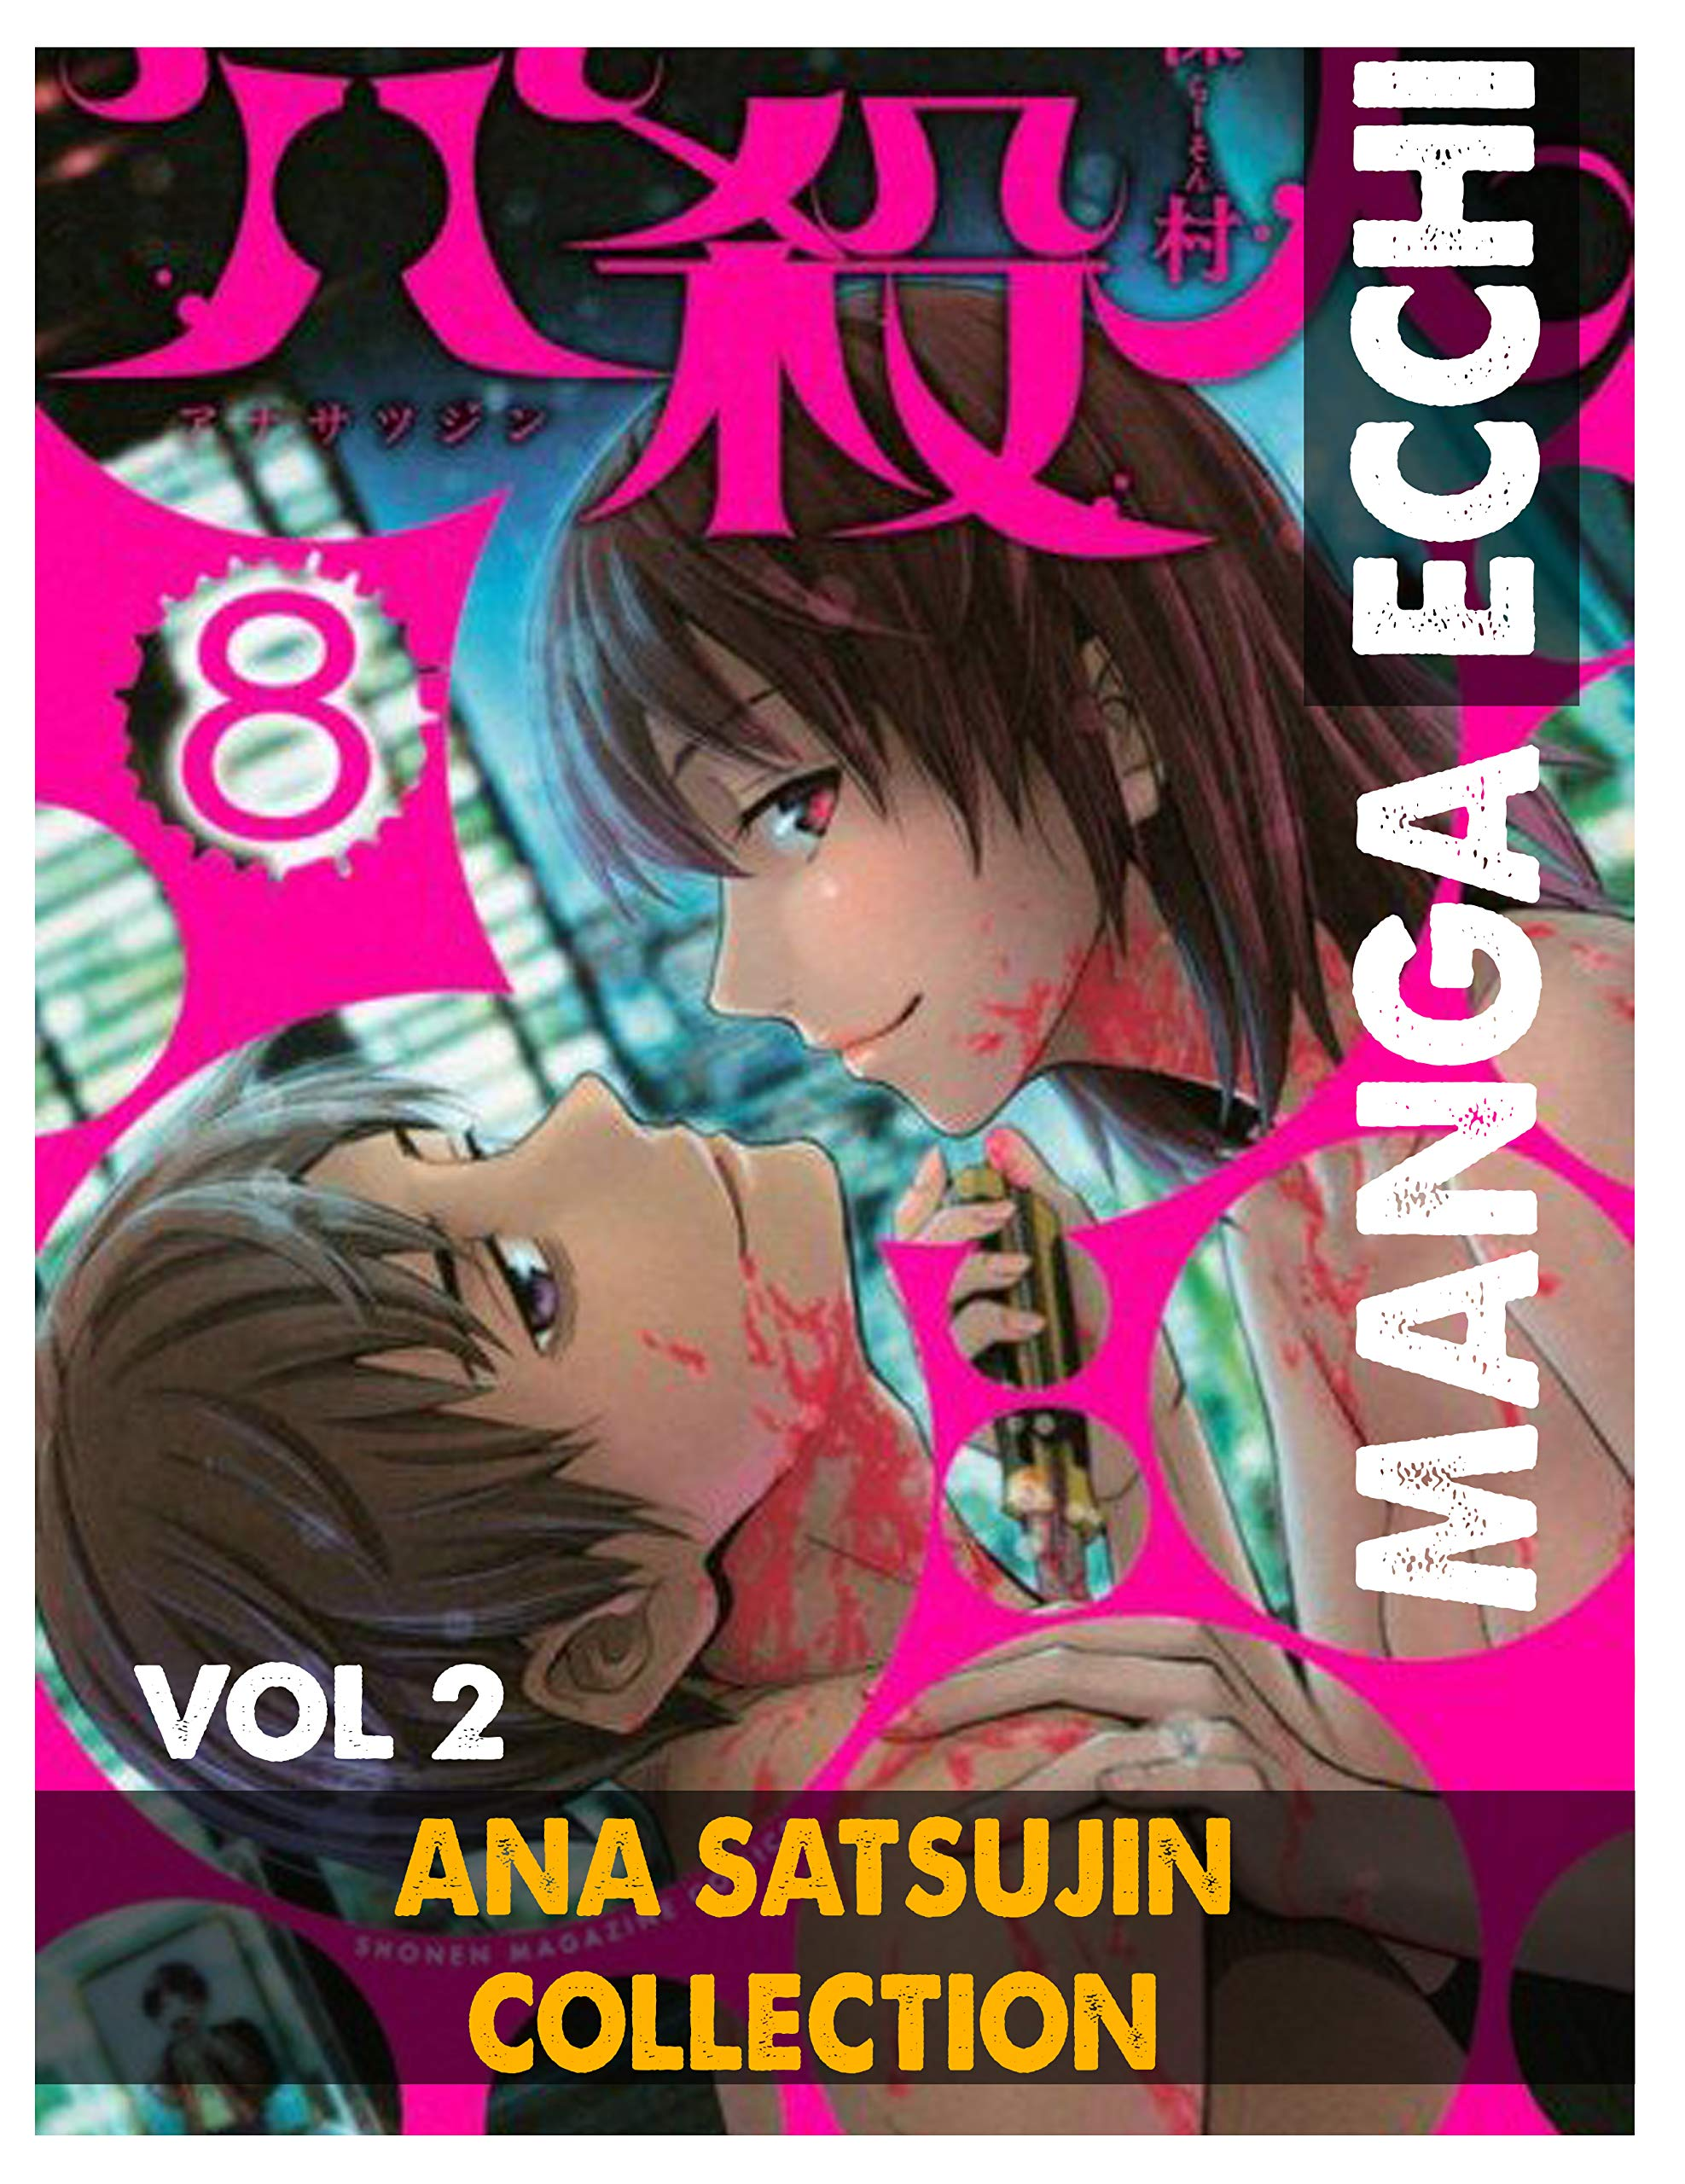 Best Ecchi Manga Ana Satsujin Collection: Ecchi Romance Ana Satsujin Full Collection Vol 2